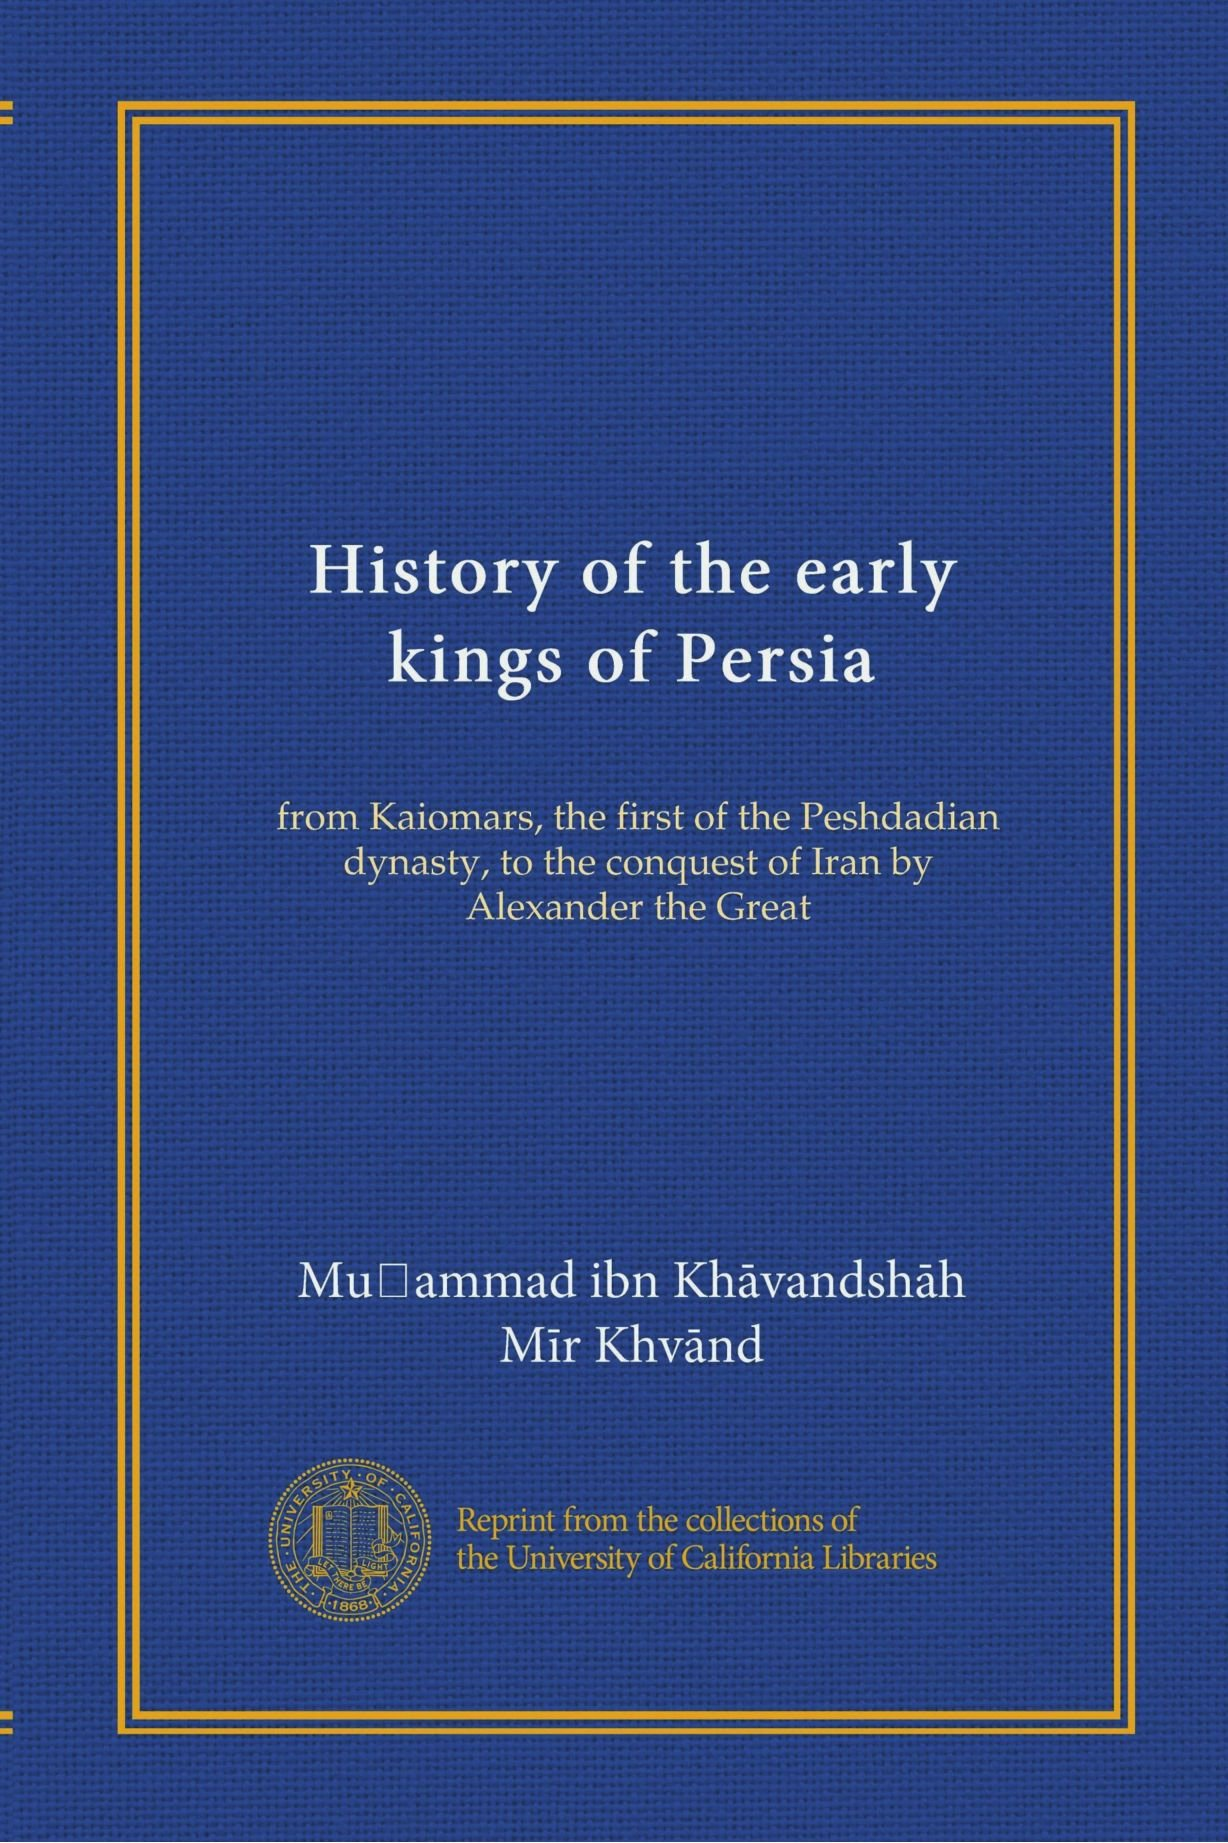 History of the early kings of Persia: from Kaiomars, the first of the Peshdadian dynasty, to the conquest of Iran by Alexander the Great ePub fb2 book